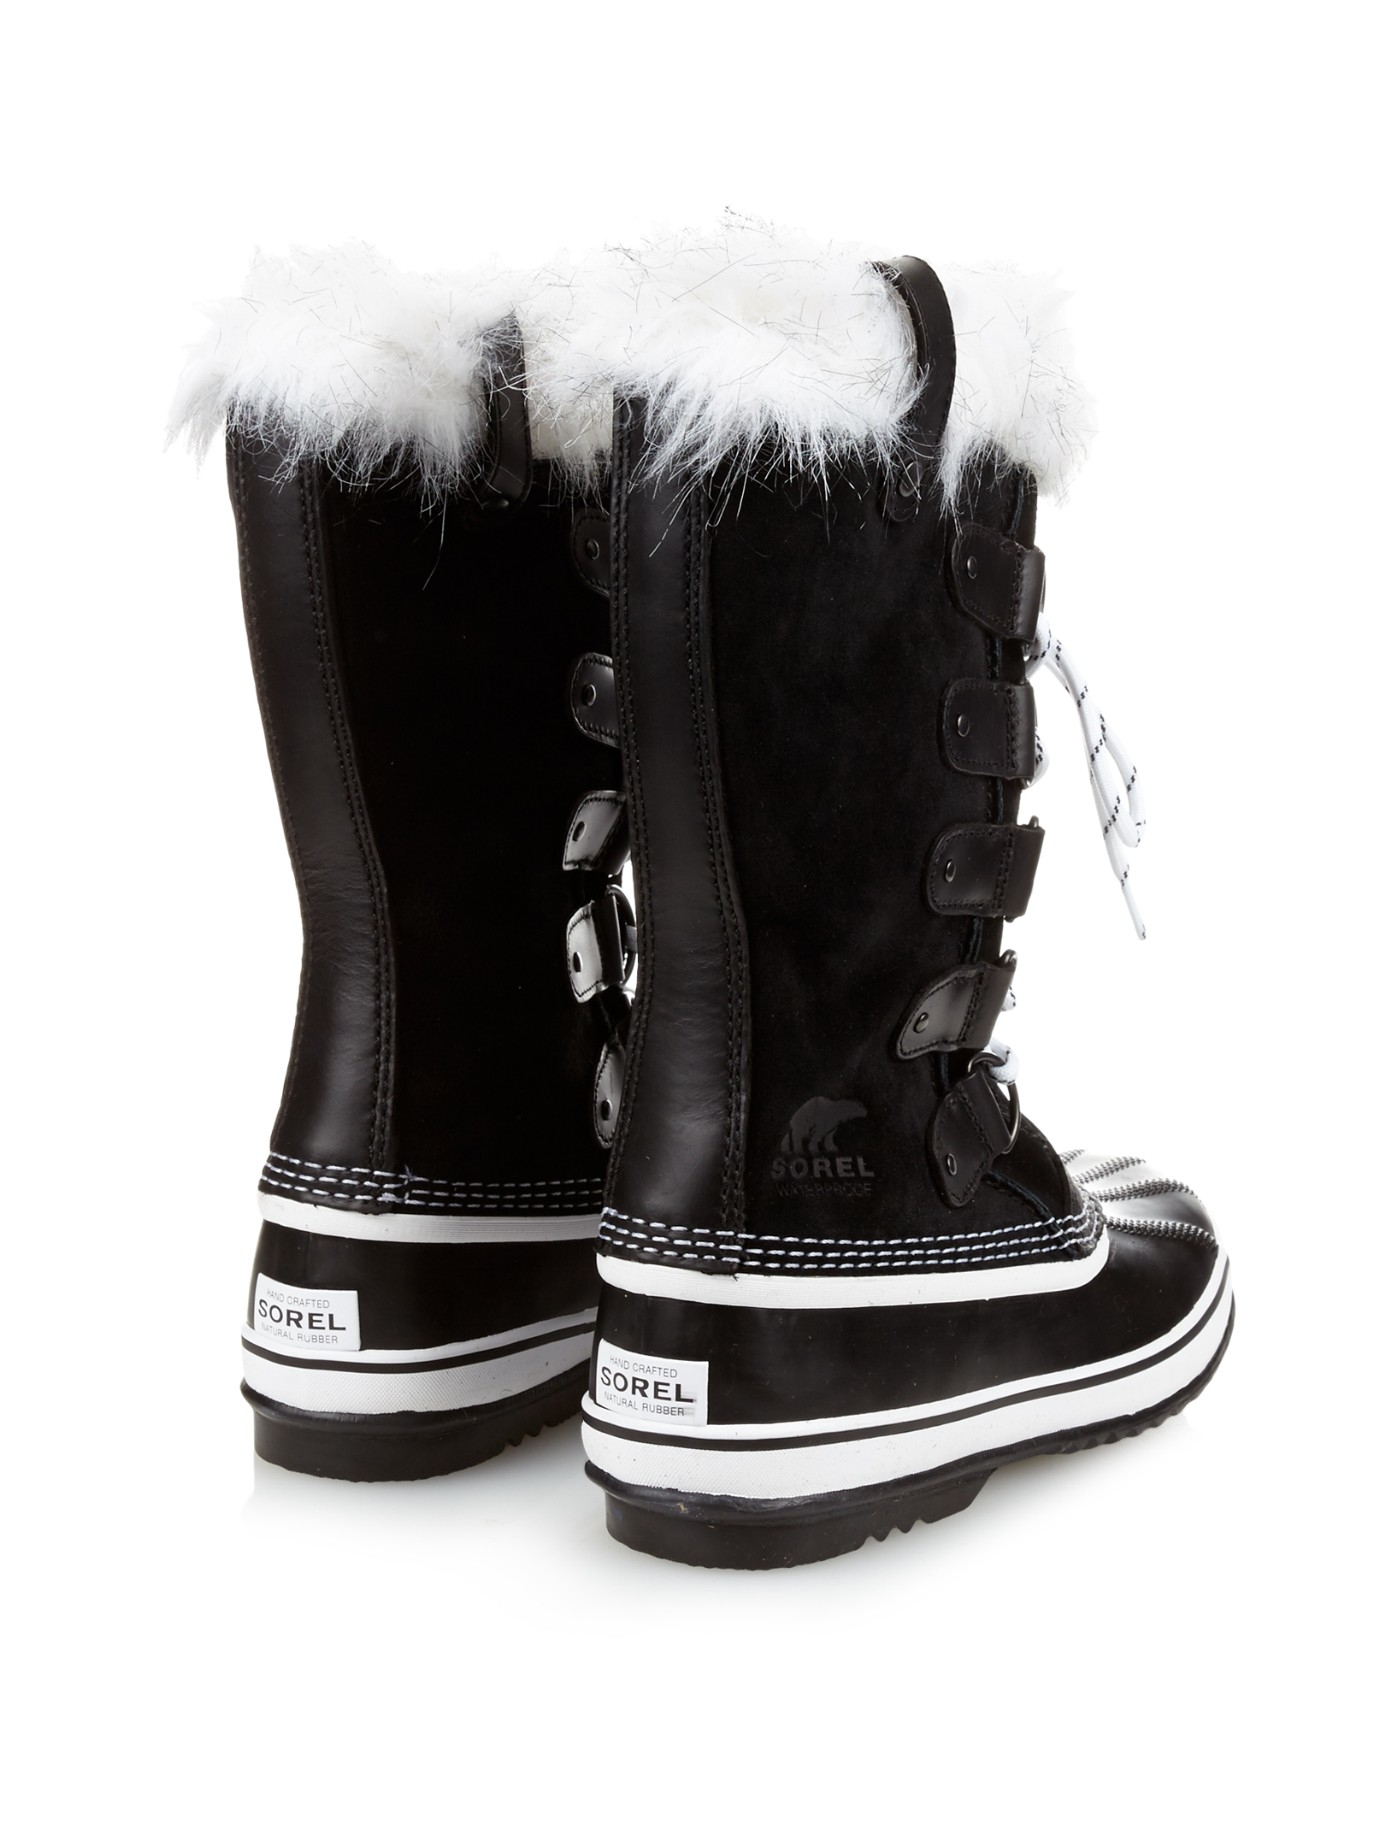 Lyst Sorel Joan Of Arctictm Suede And Rubber Boots In Black